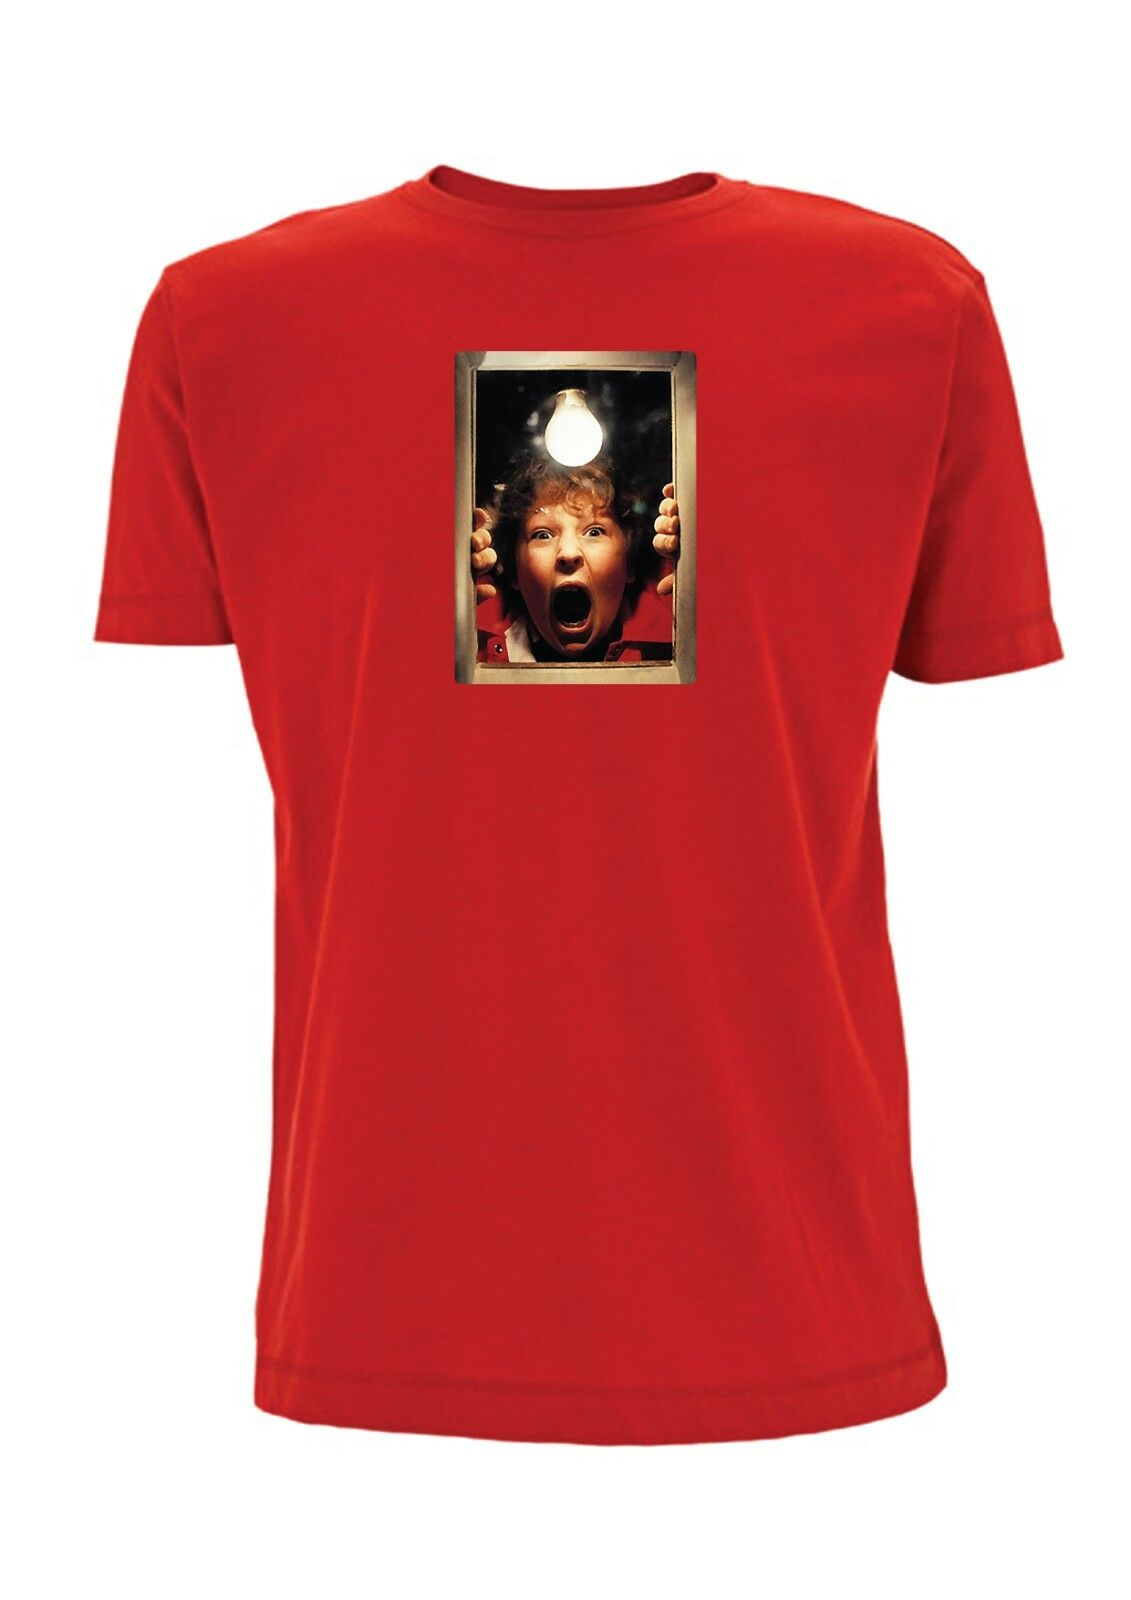 Goonies-Chunk T Shirt 1980S Movie Classic The Fratellis Party Shirt Goonie Film image